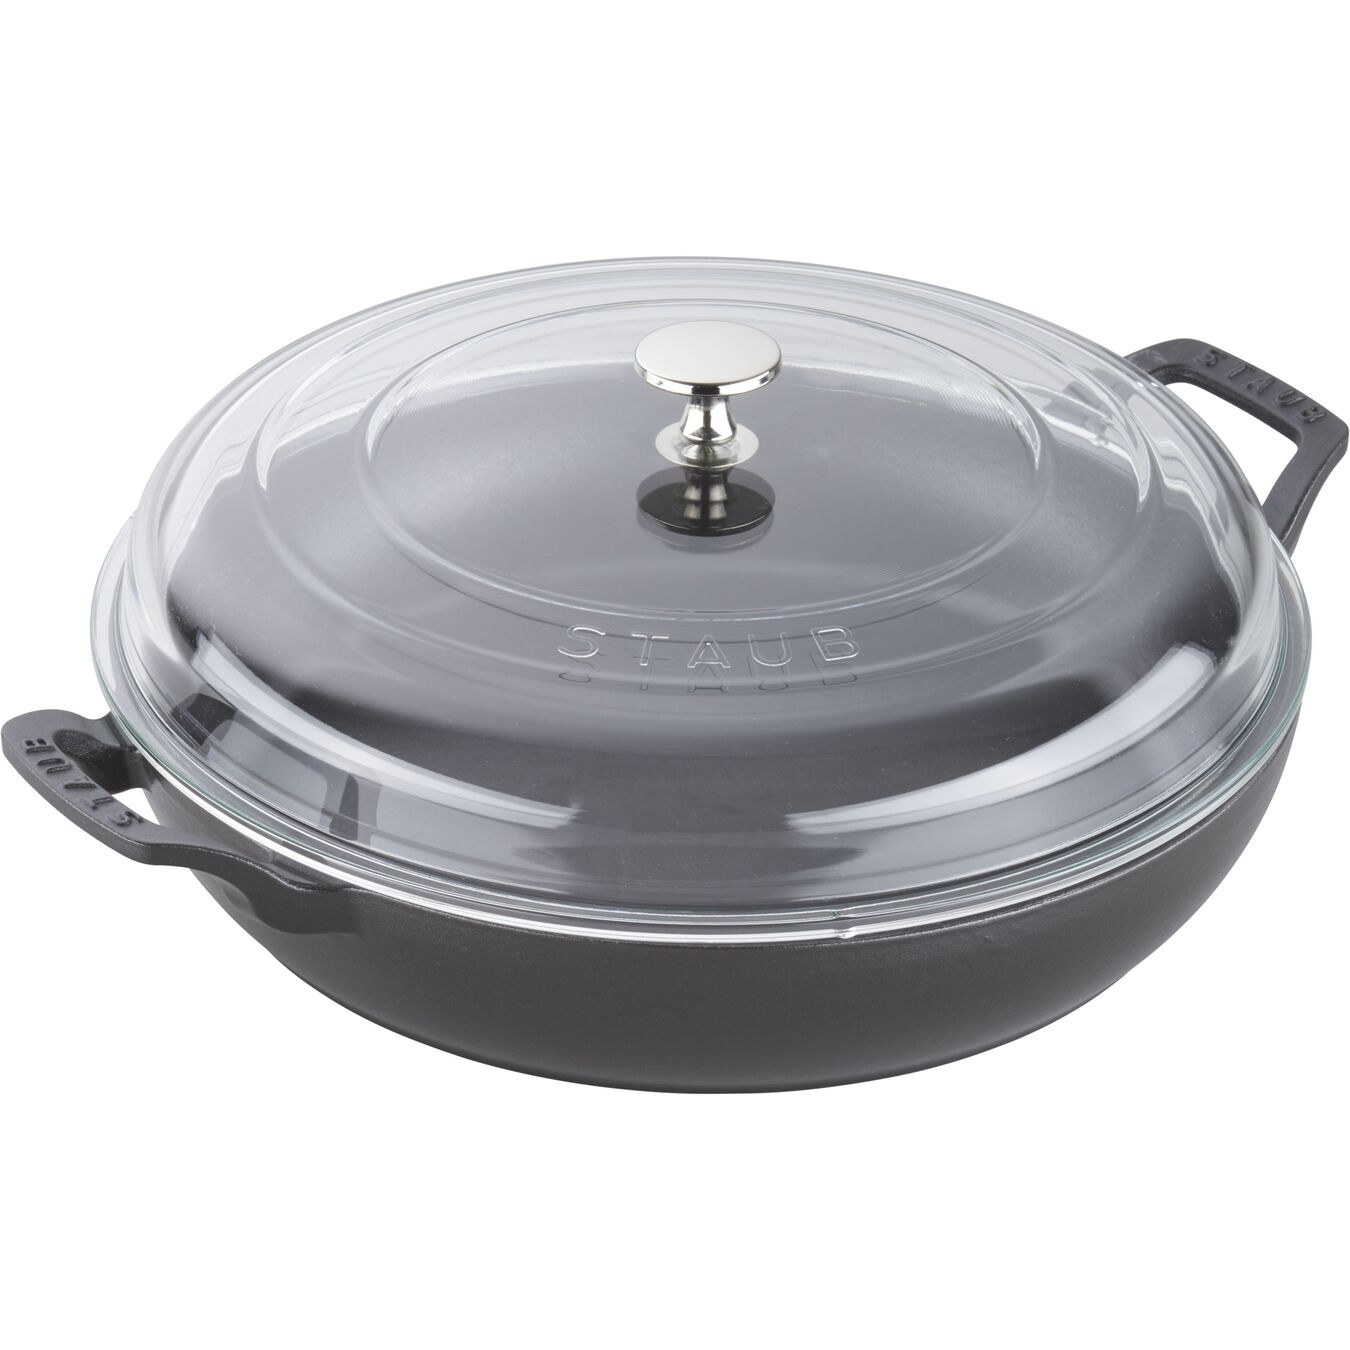 3.5-qt Enamel Braiser with Glass Lid,,large 2